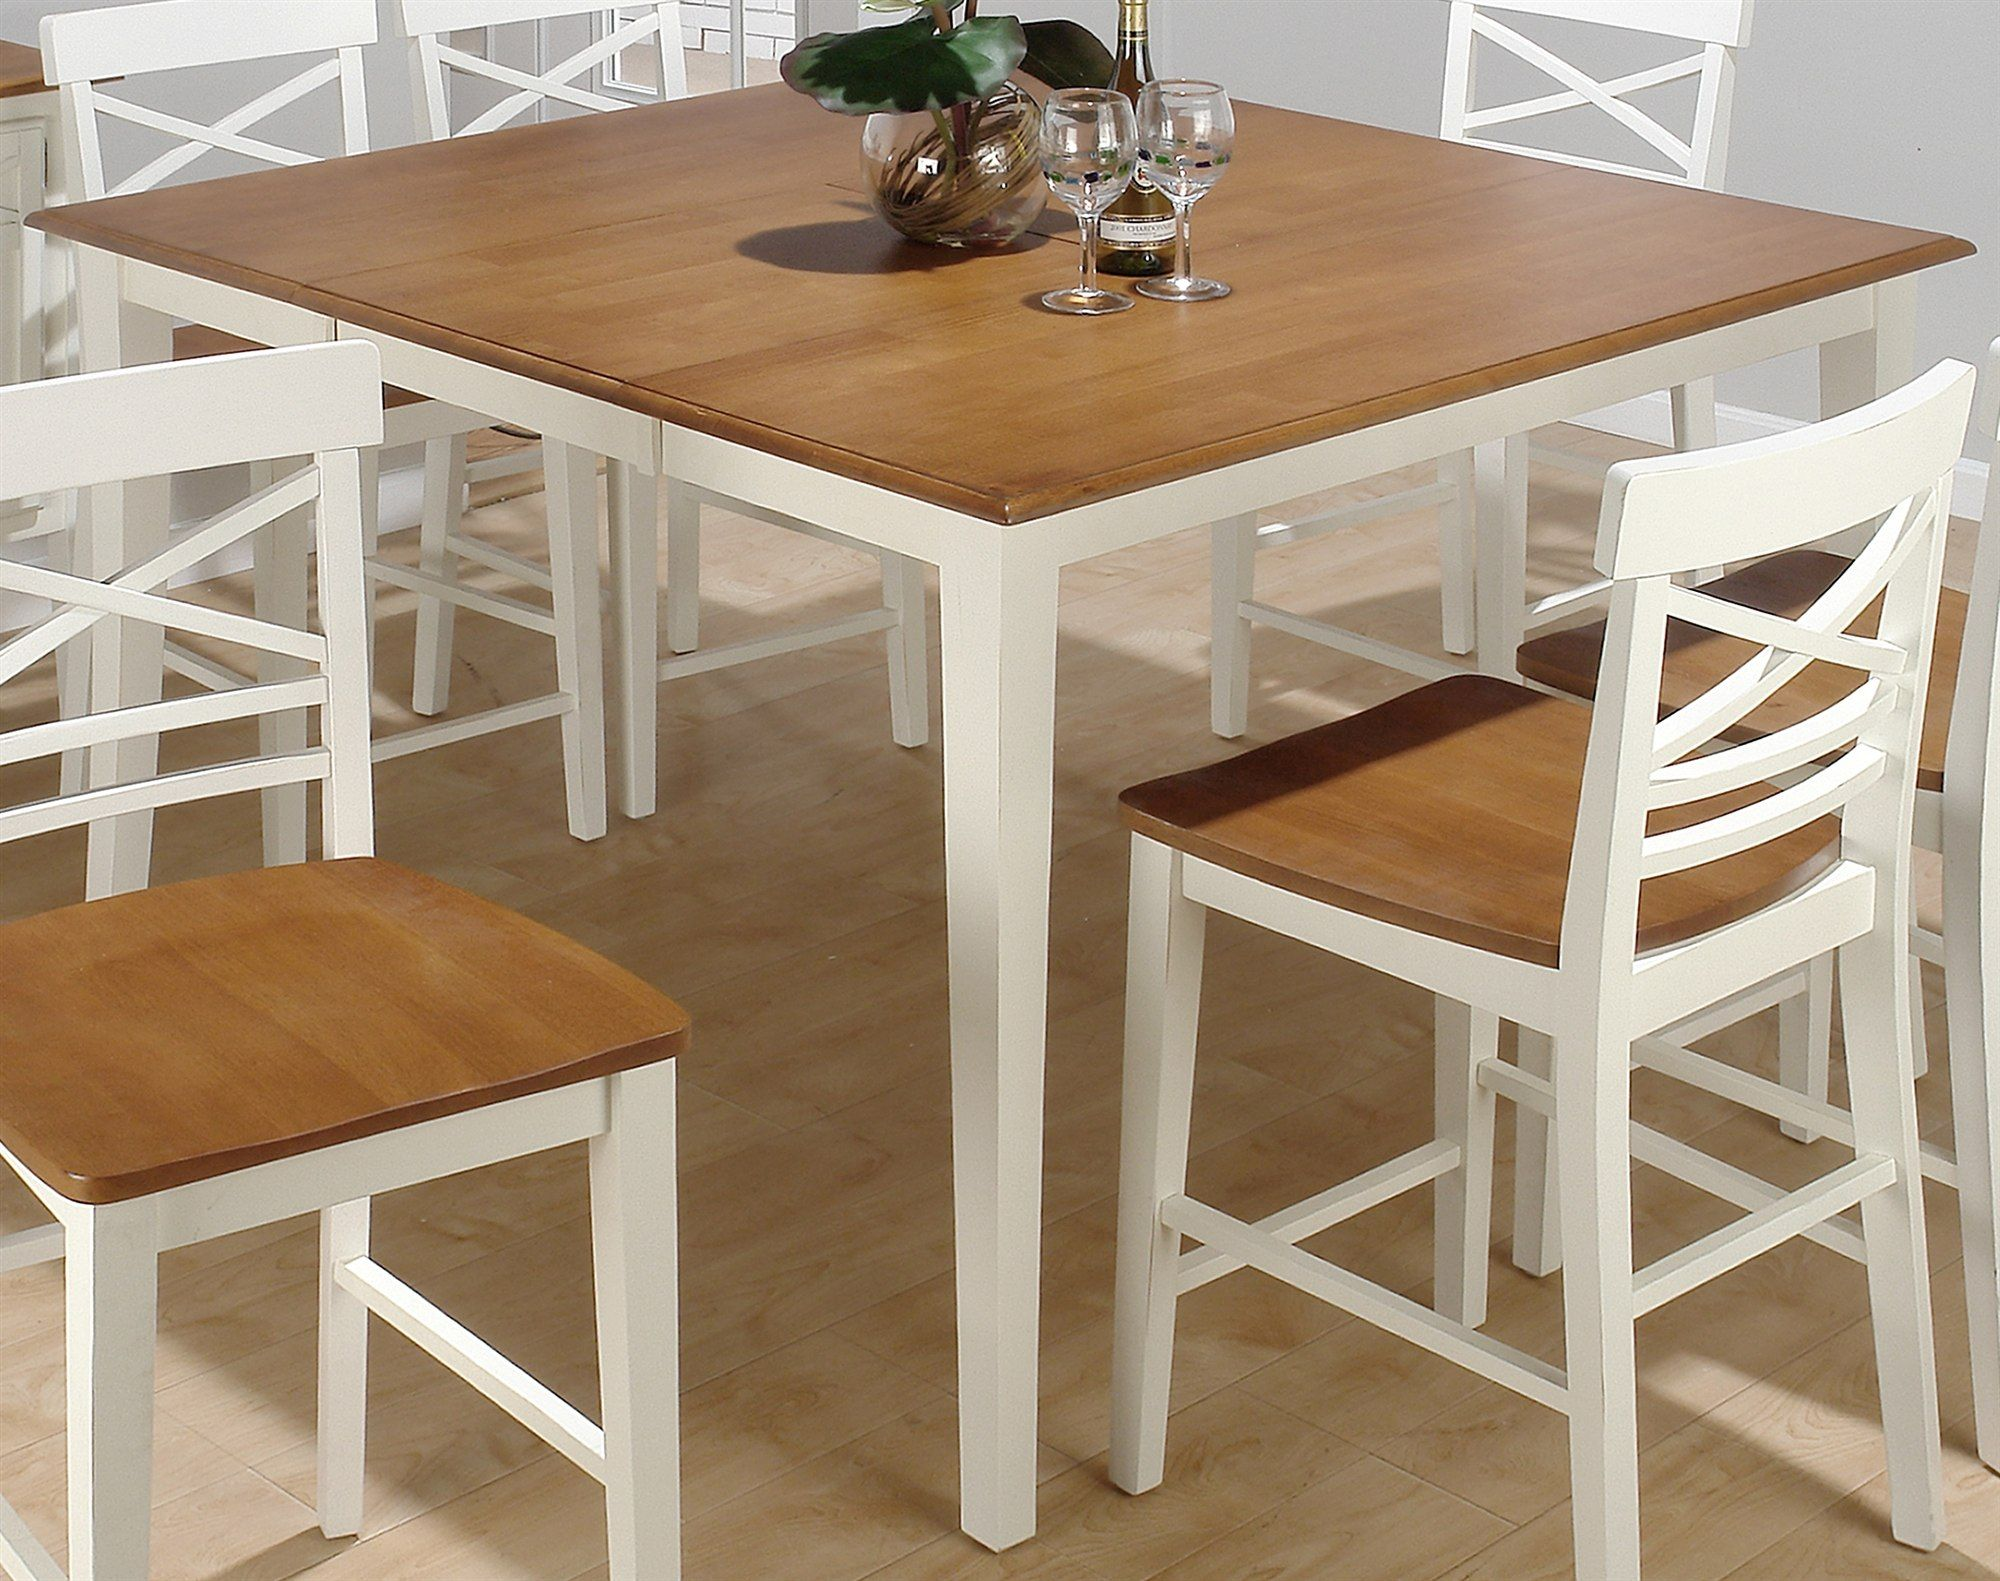 expandable furniture. delighful expandable interior inspiration furniture surprising solid brown square expandable  dining table white woods legs and cool glass with